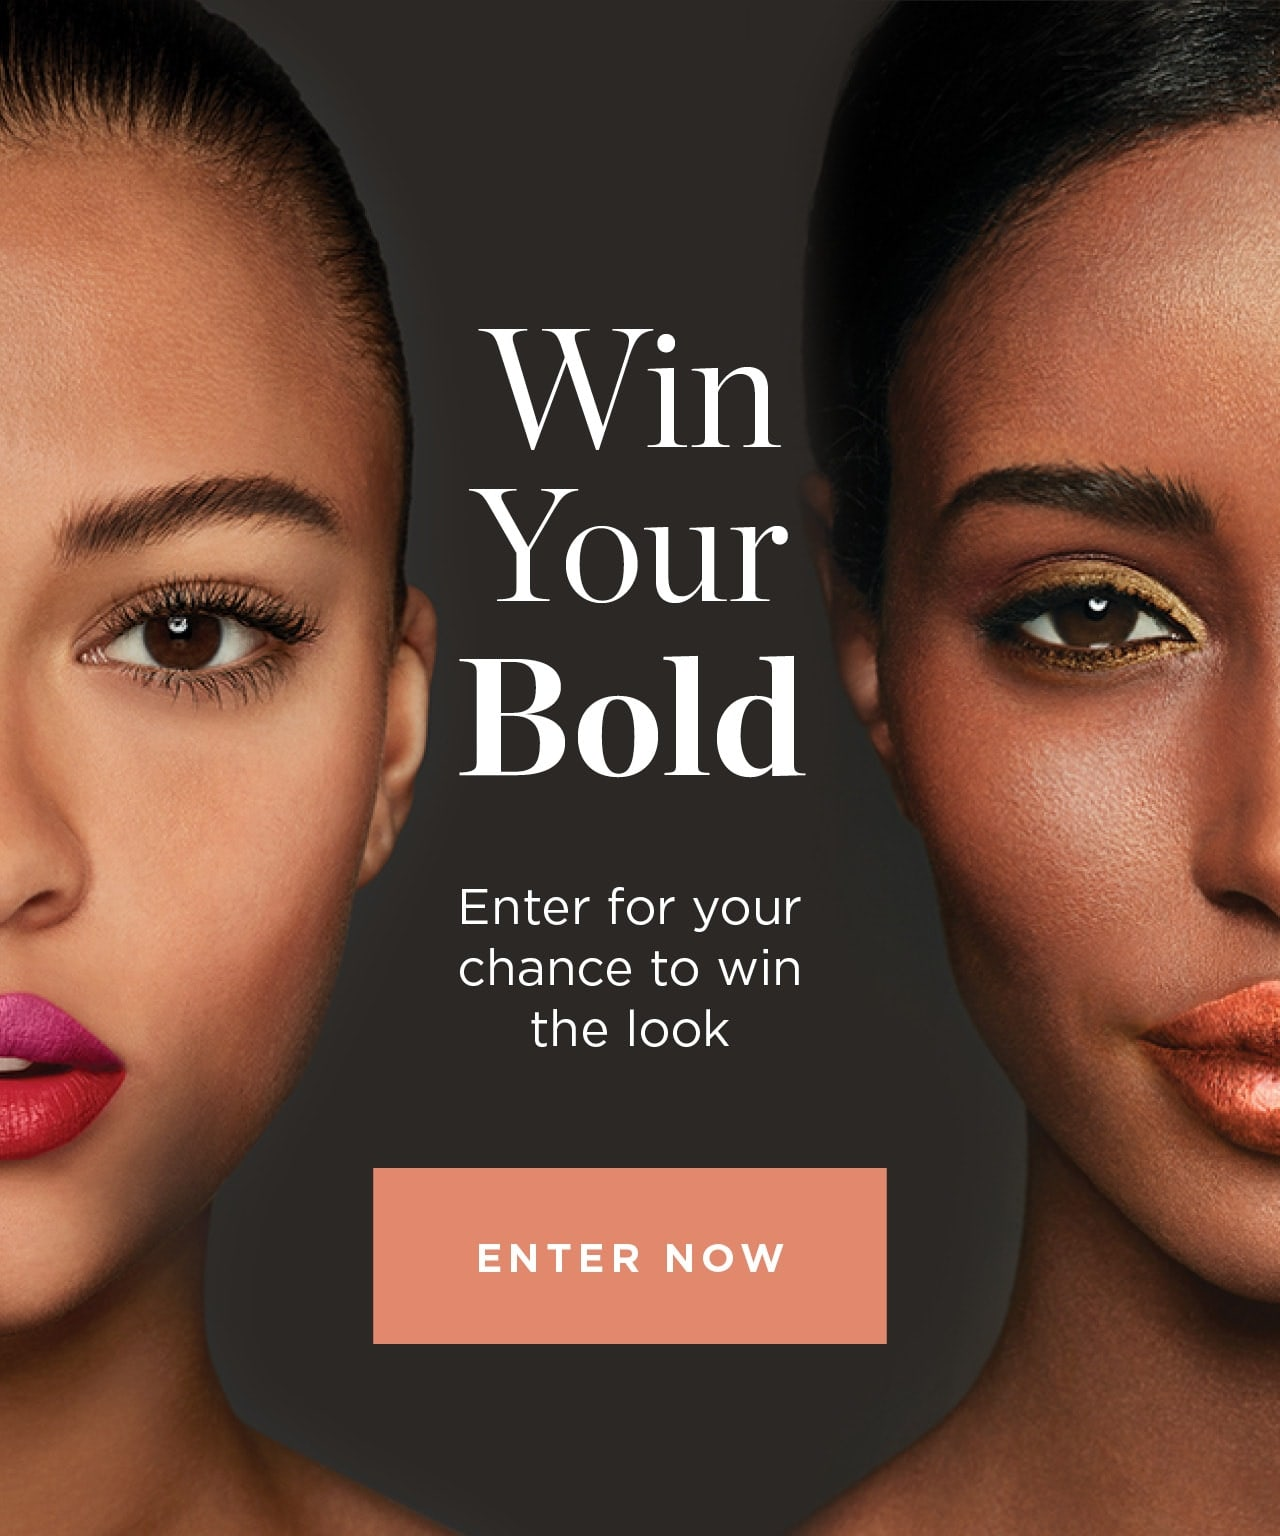 Wind Your Bold. Enter for your chance to win the look.